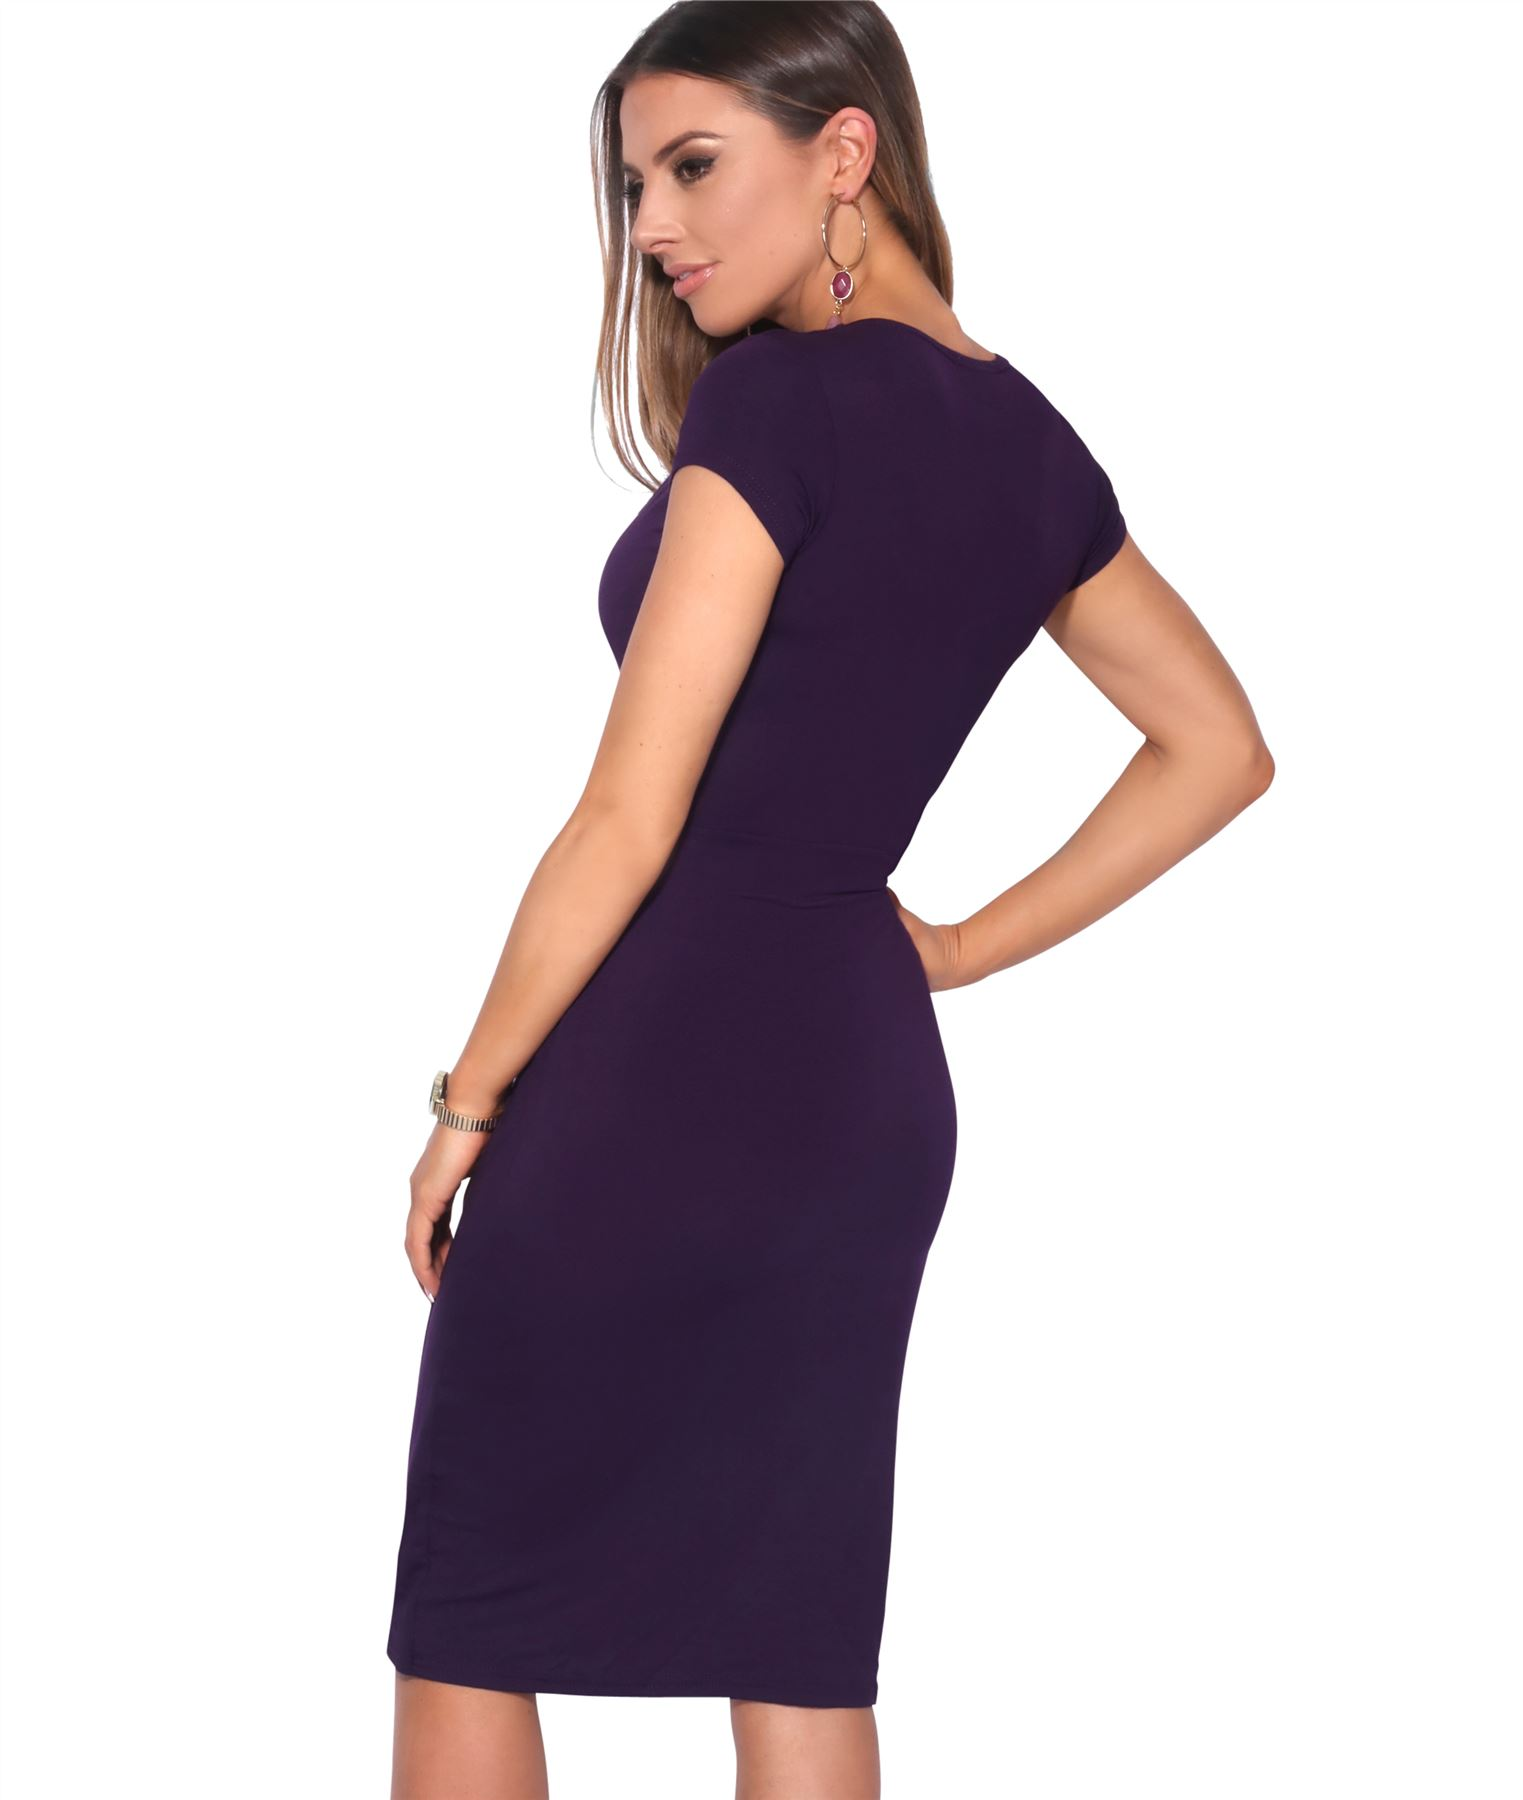 Womens-Ladies-V-Neck-Wrap-Midi-Dress-Front-Pleated-Skirt-Top-Cap-Sleeve-Party thumbnail 19